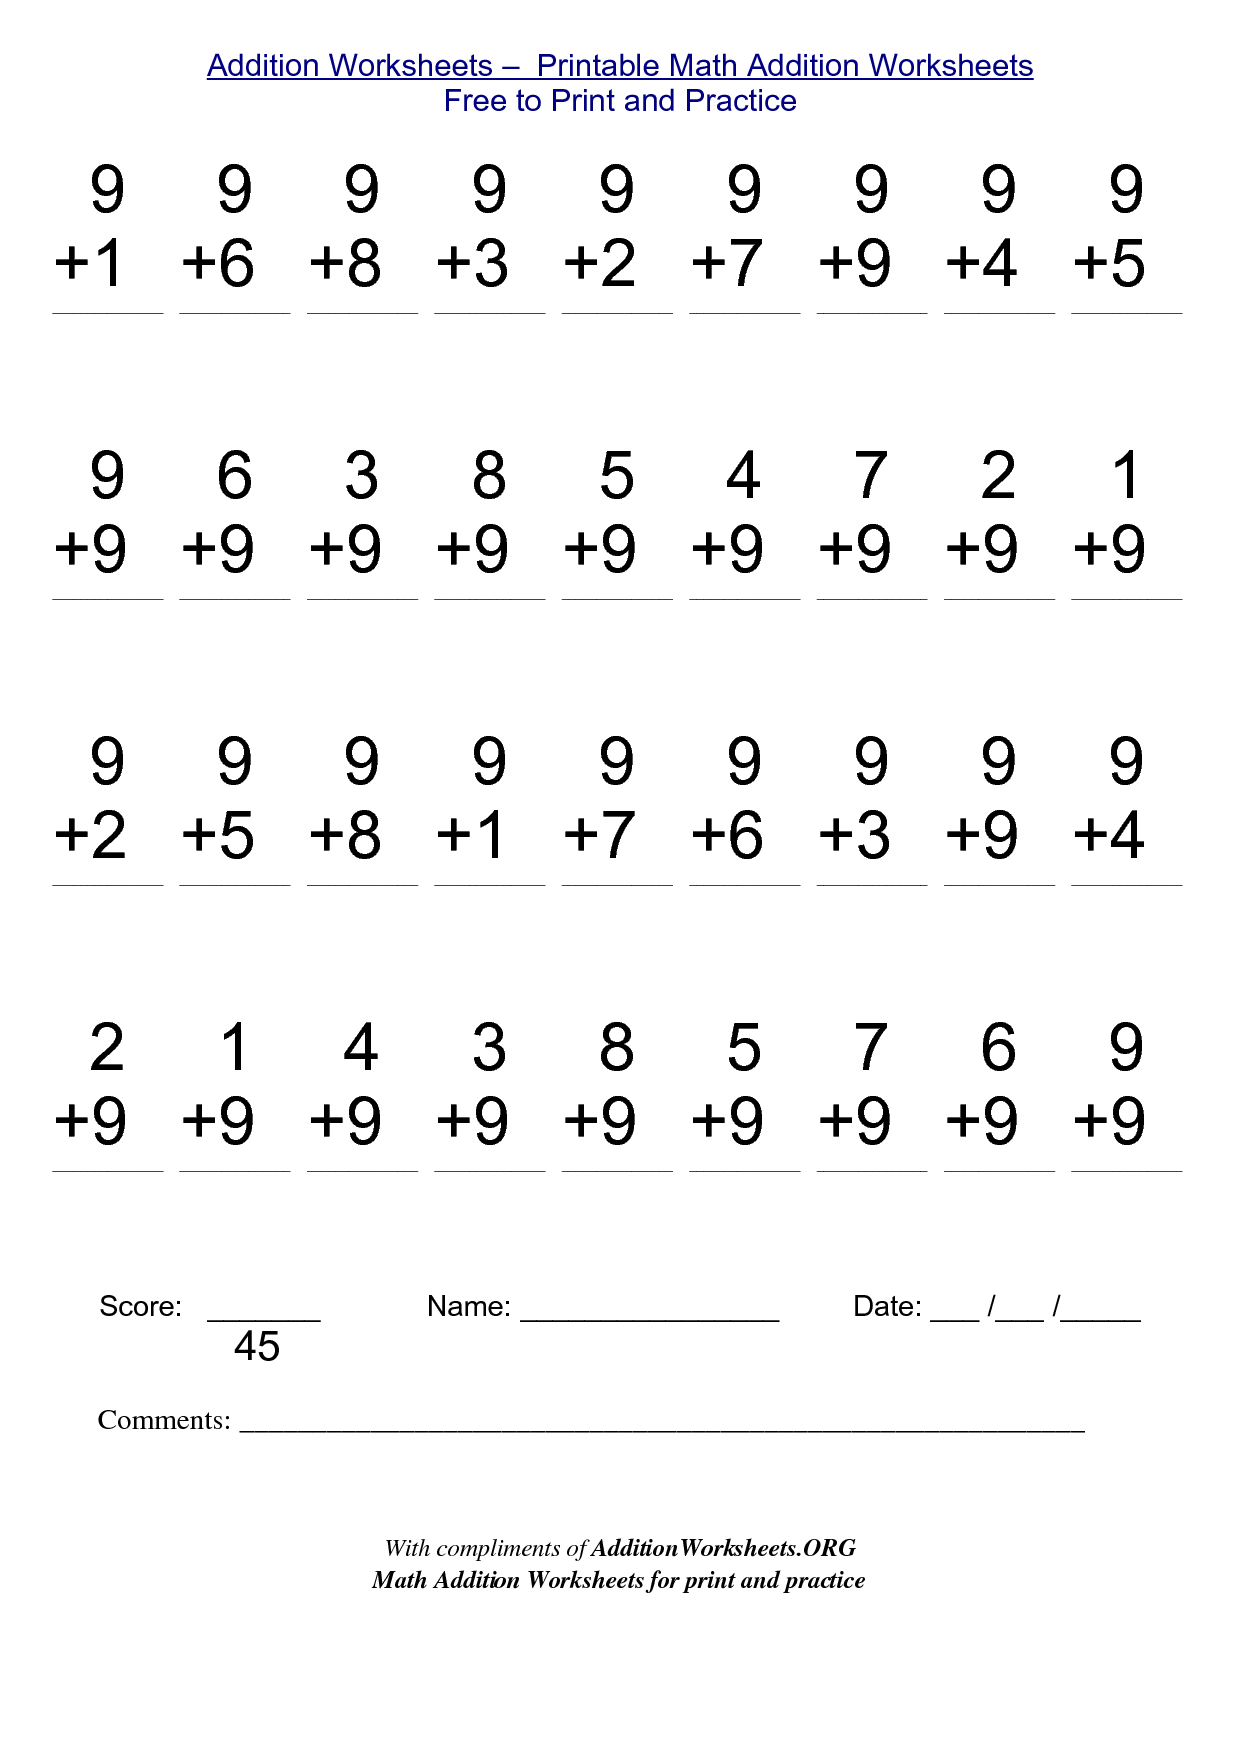 Free Worksheet 100 Addition Facts 120 For Educators – Maths Addition Worksheets for Grade 1